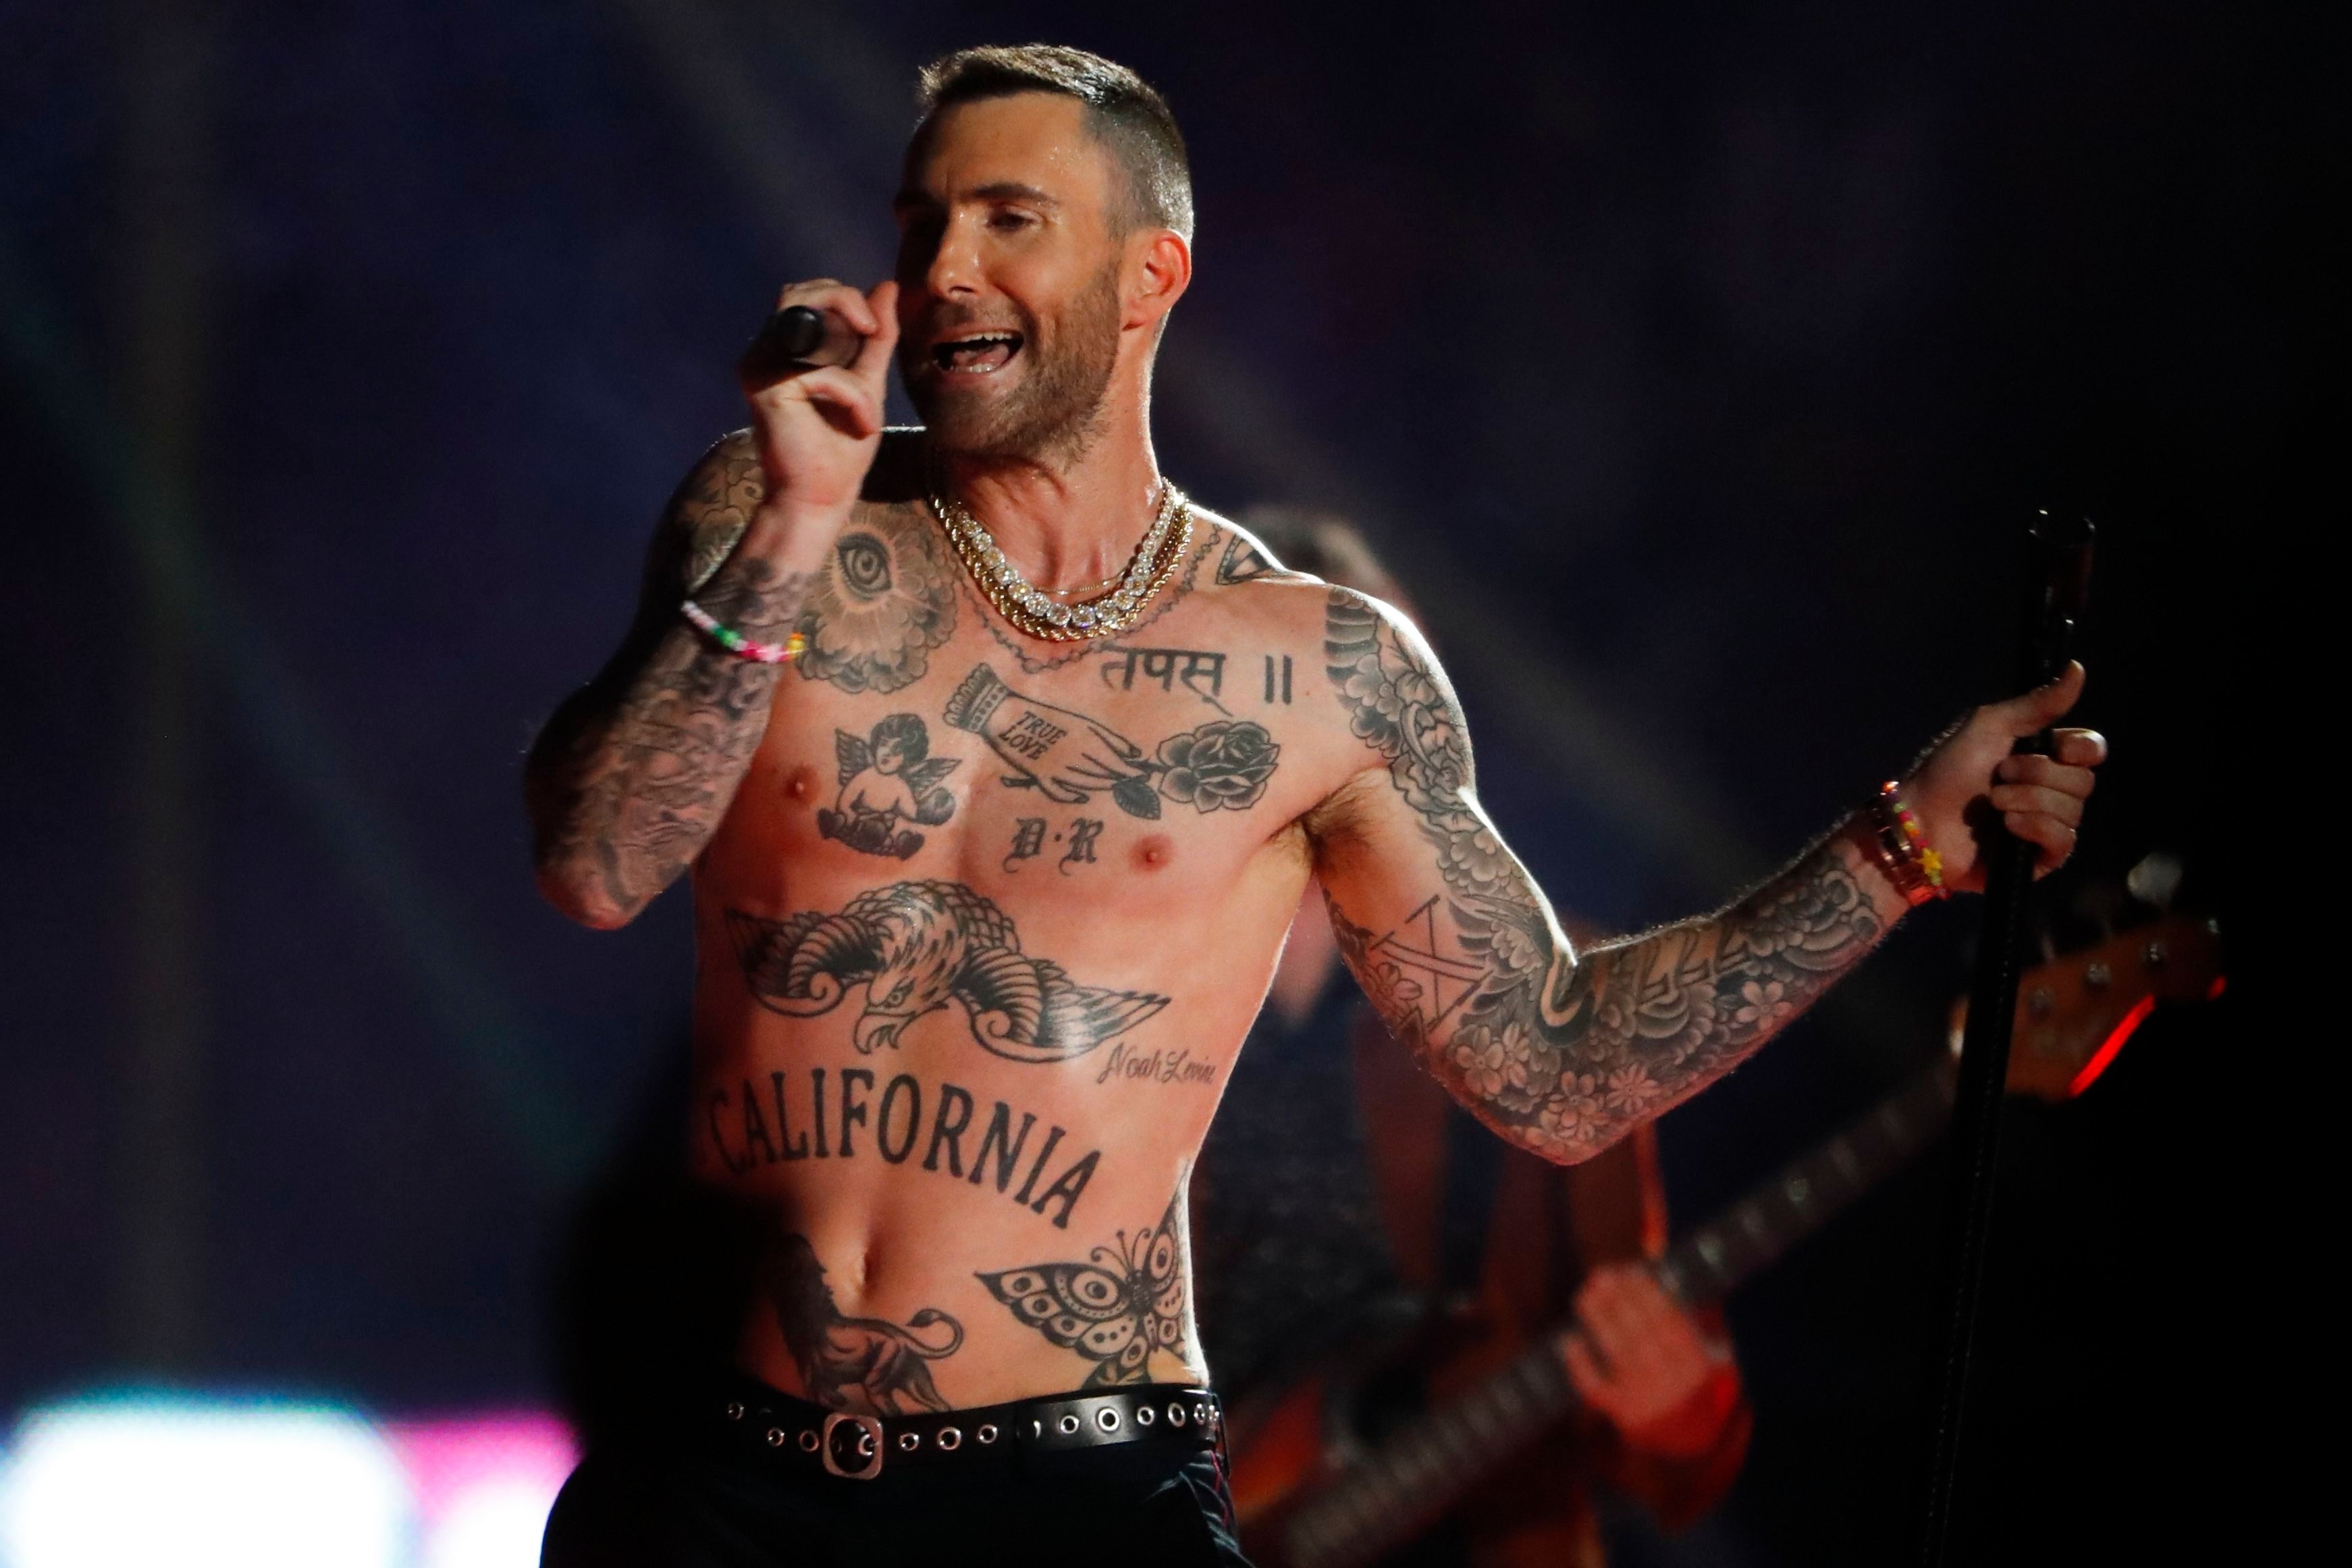 Maroon 5 Super Bowl Halftime Show: 5 Important Questions pertaining to Super Bowl Maroon 5